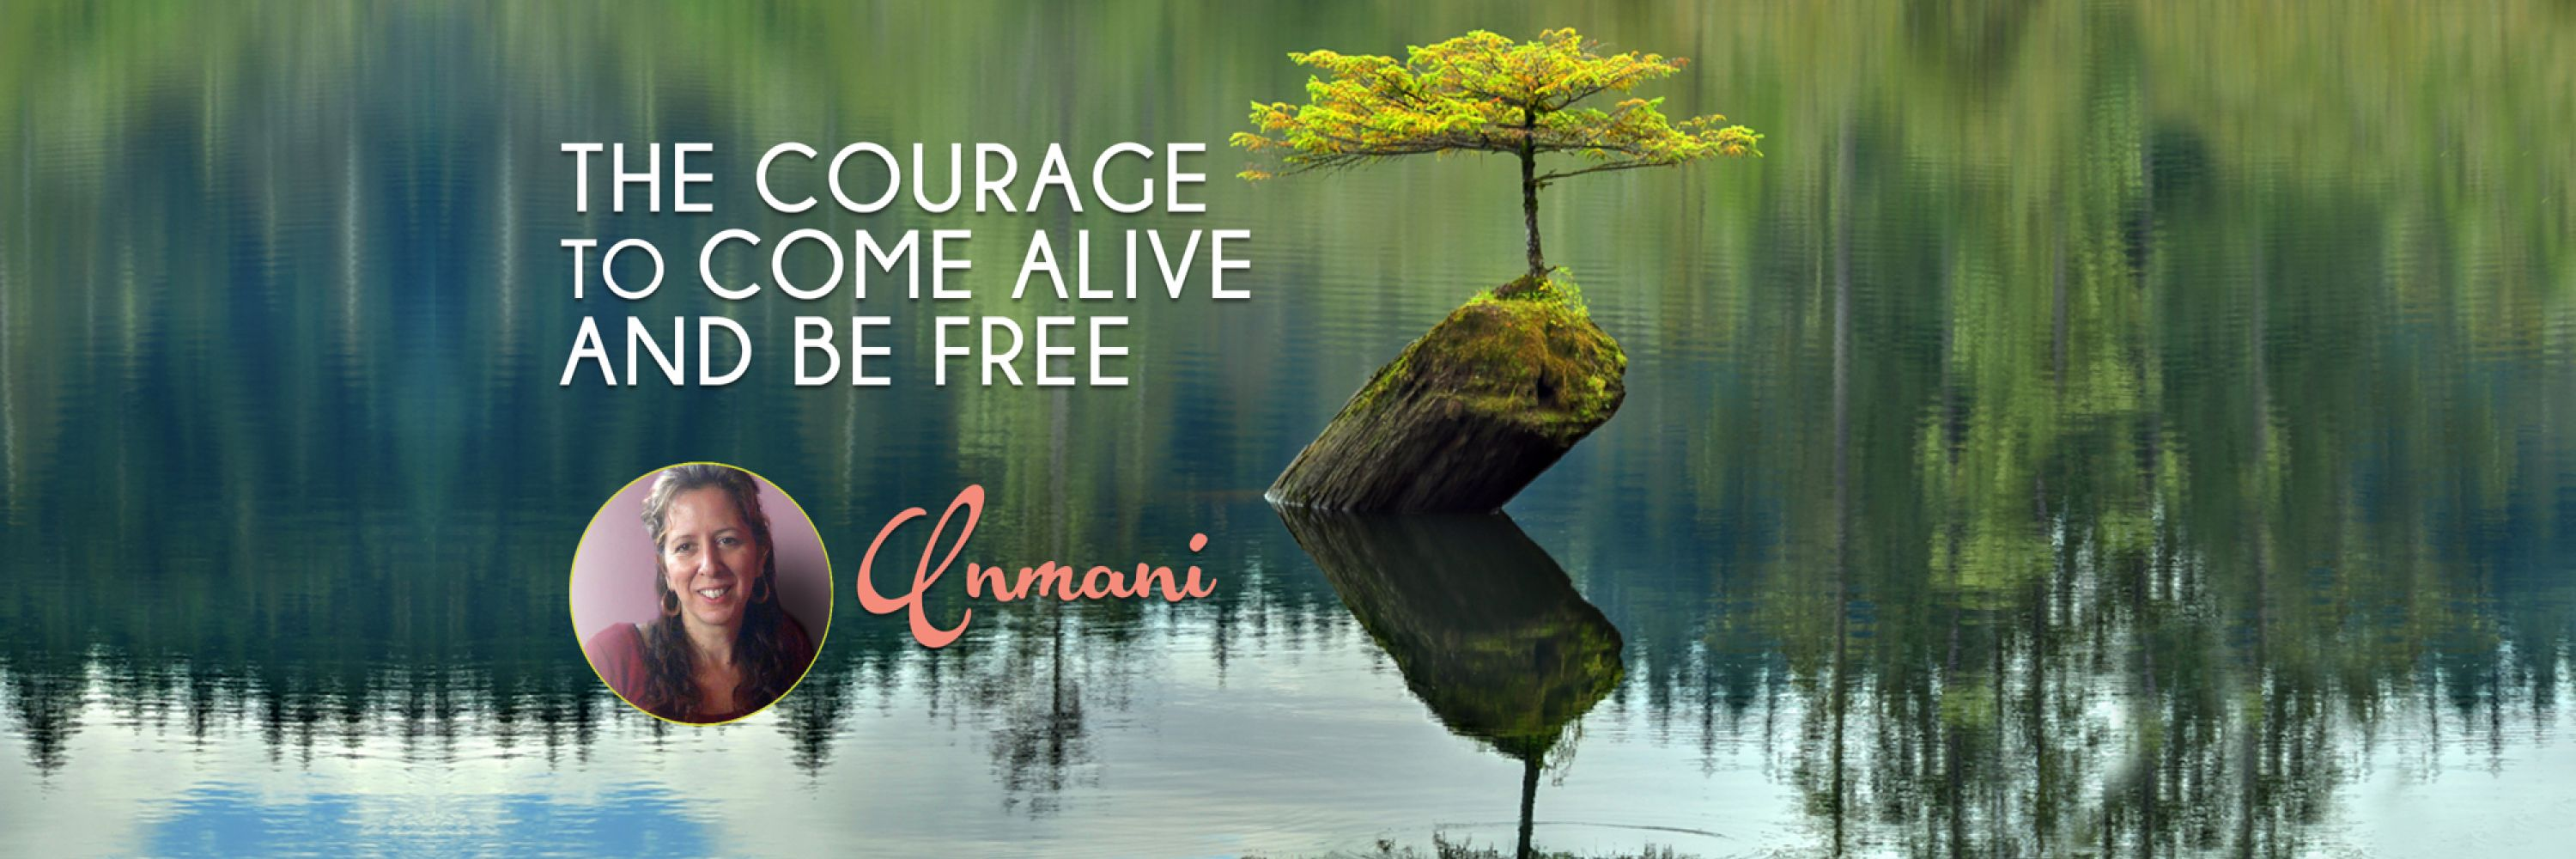 The Courage to Come Alive and Be Free